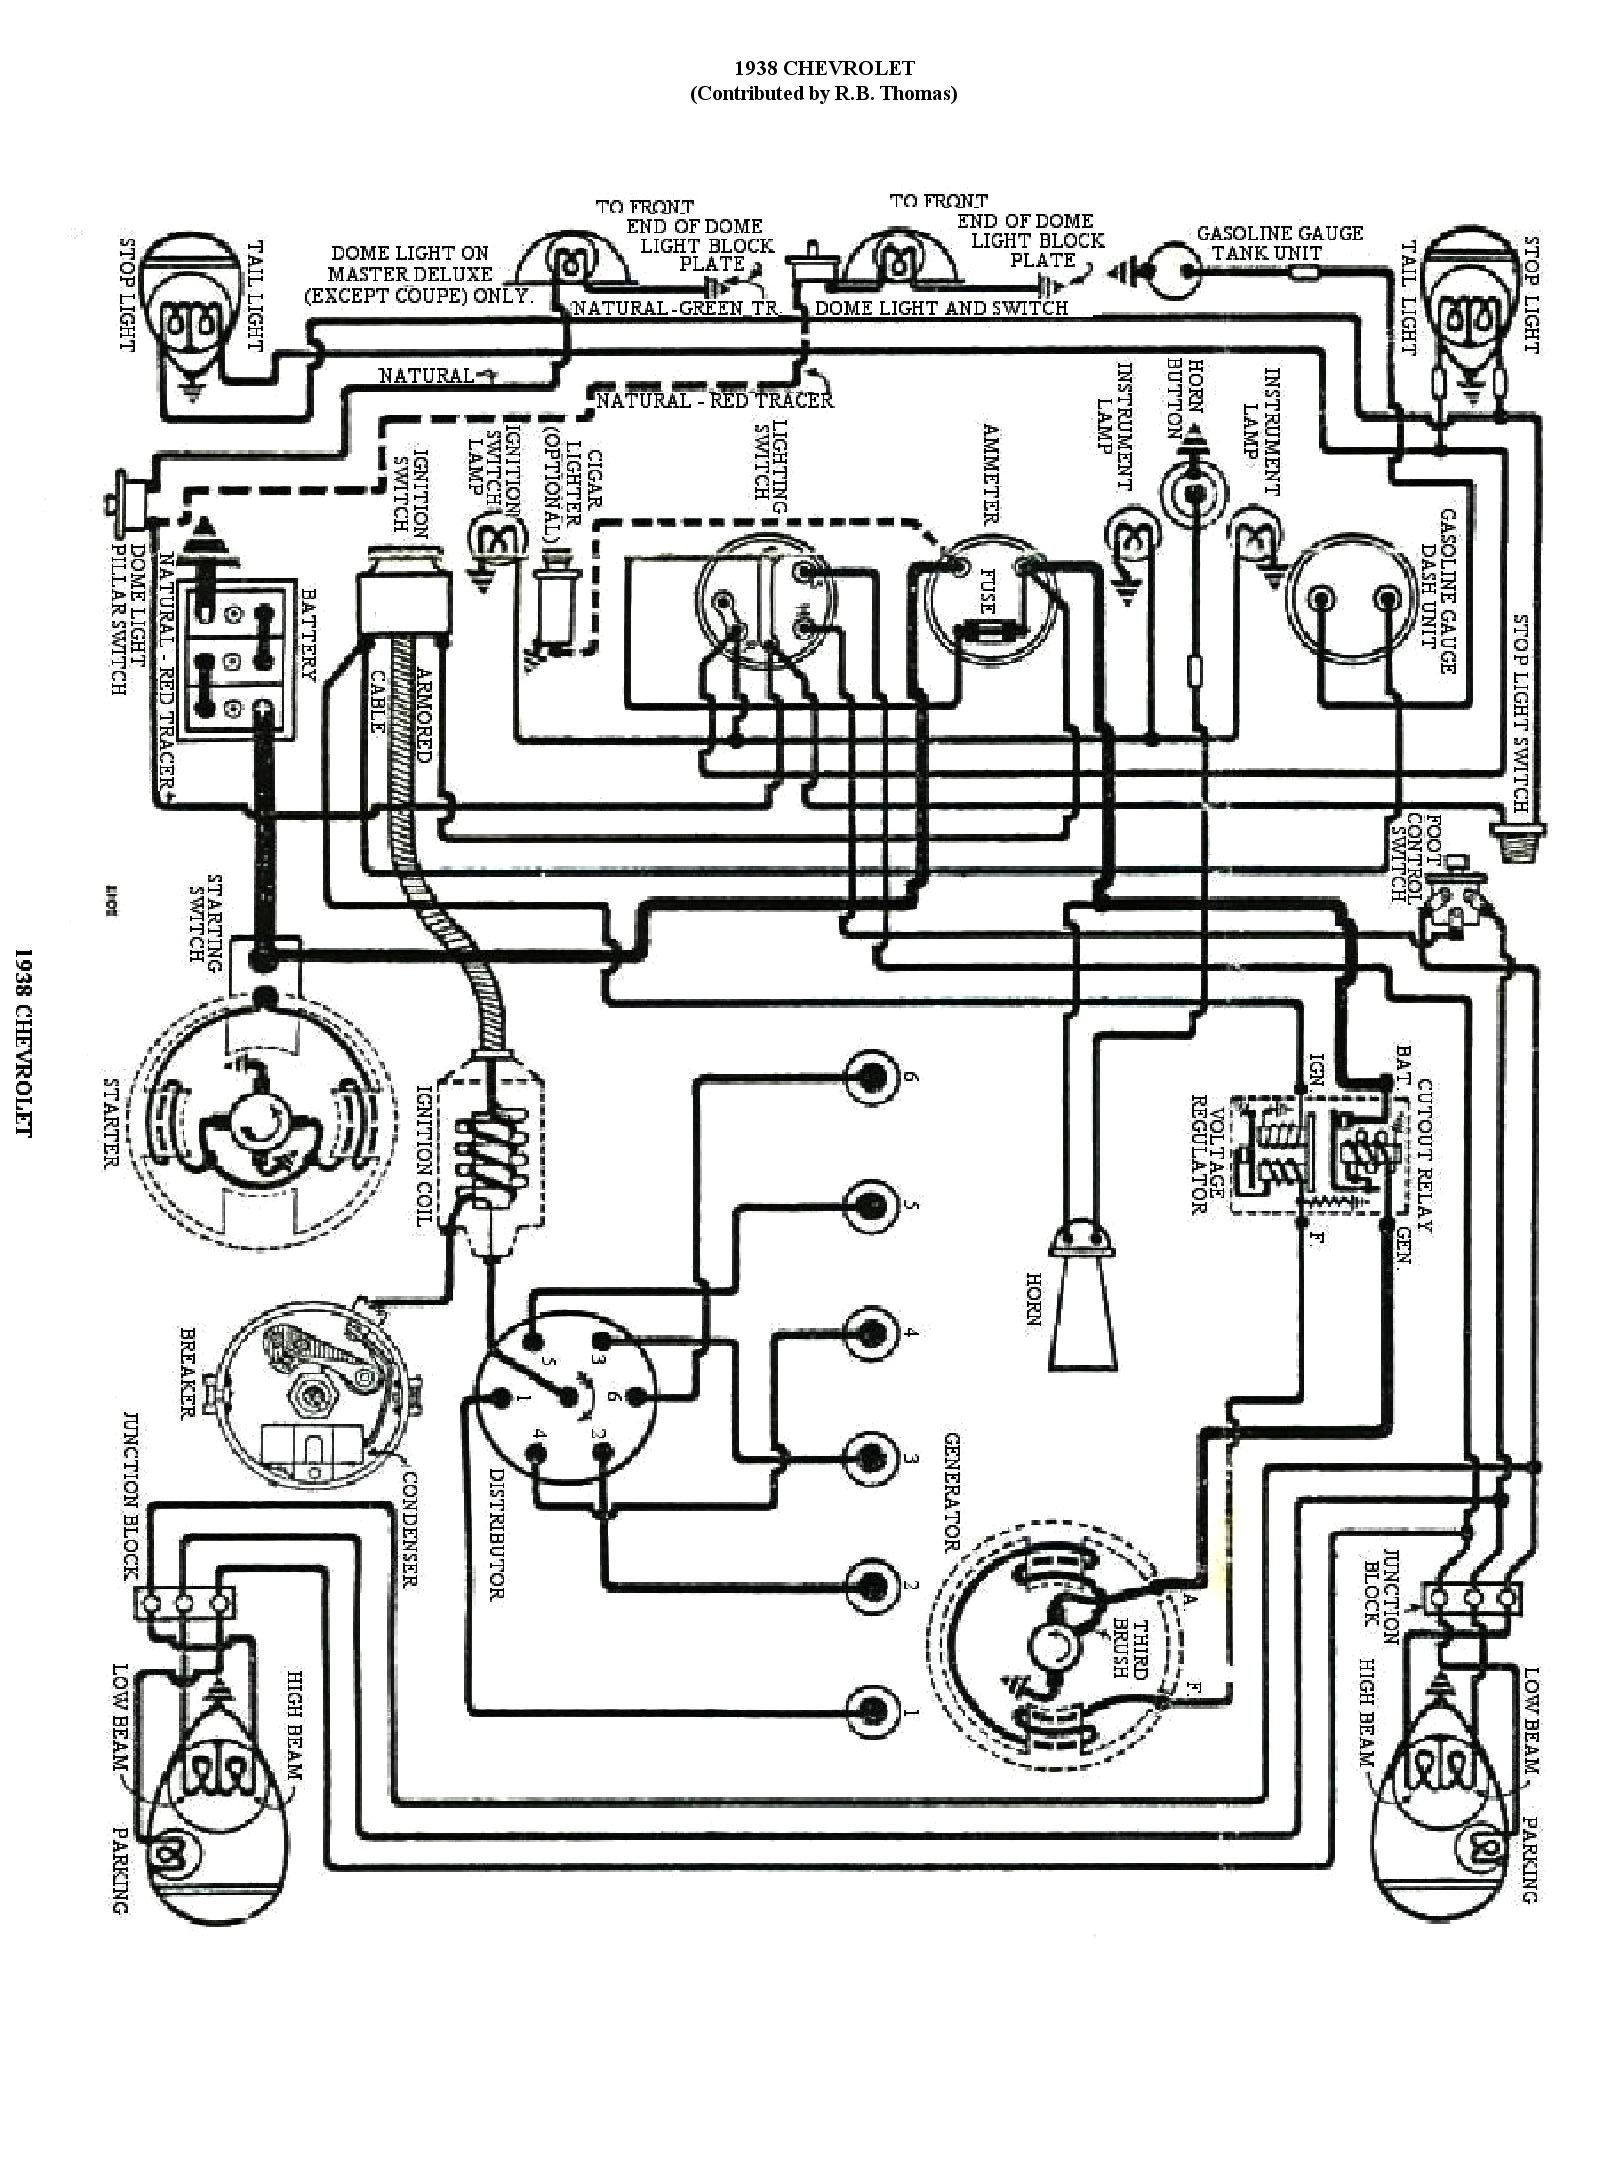 38wiring chevy wiring diagrams ac wiring harness at bayanpartner.co